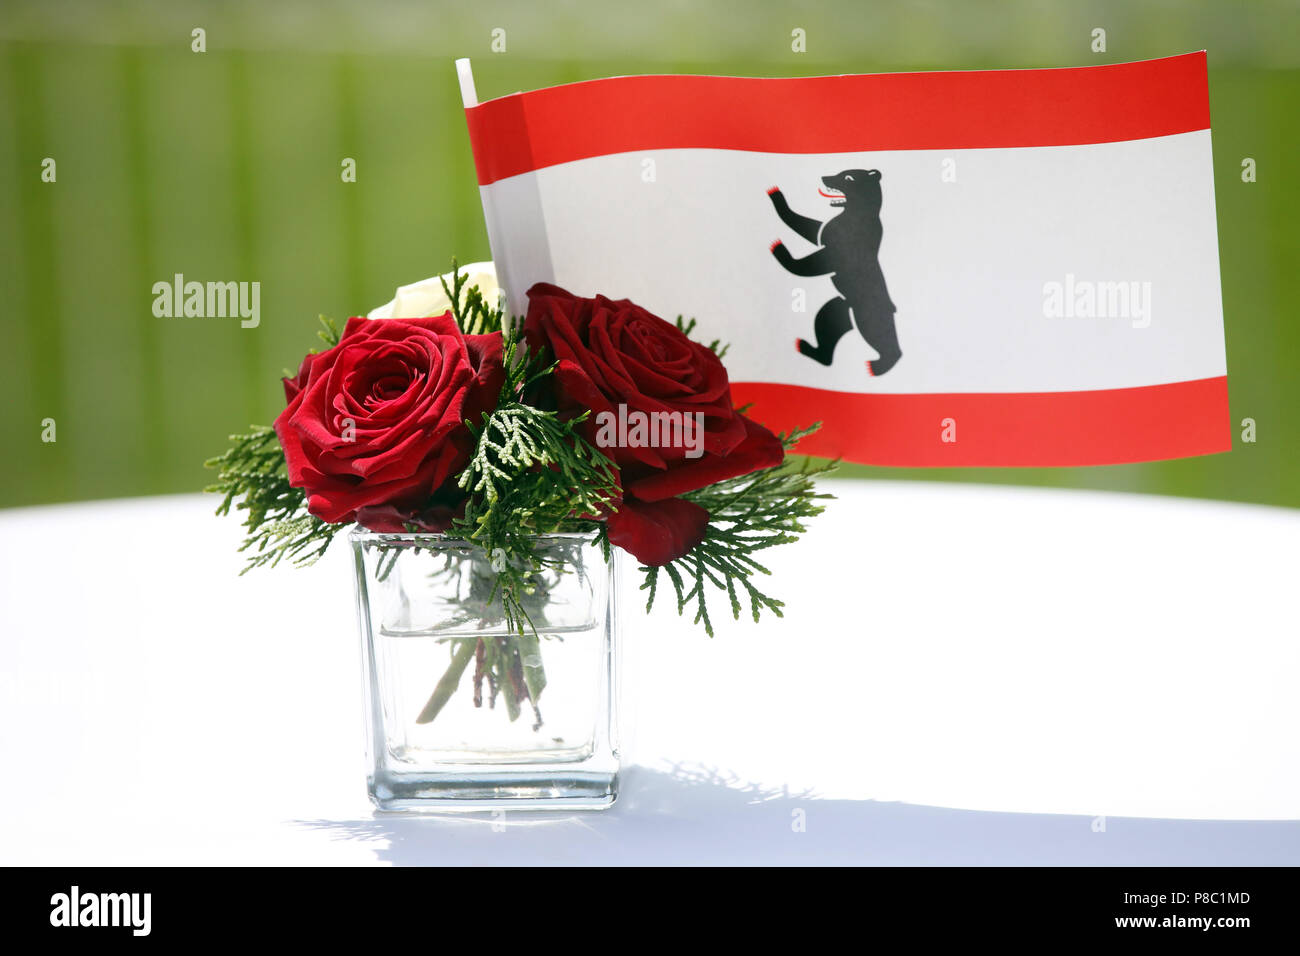 Hoppegarten, Germany, flag of the state of Berlin and red roses in a small vase - Stock Image